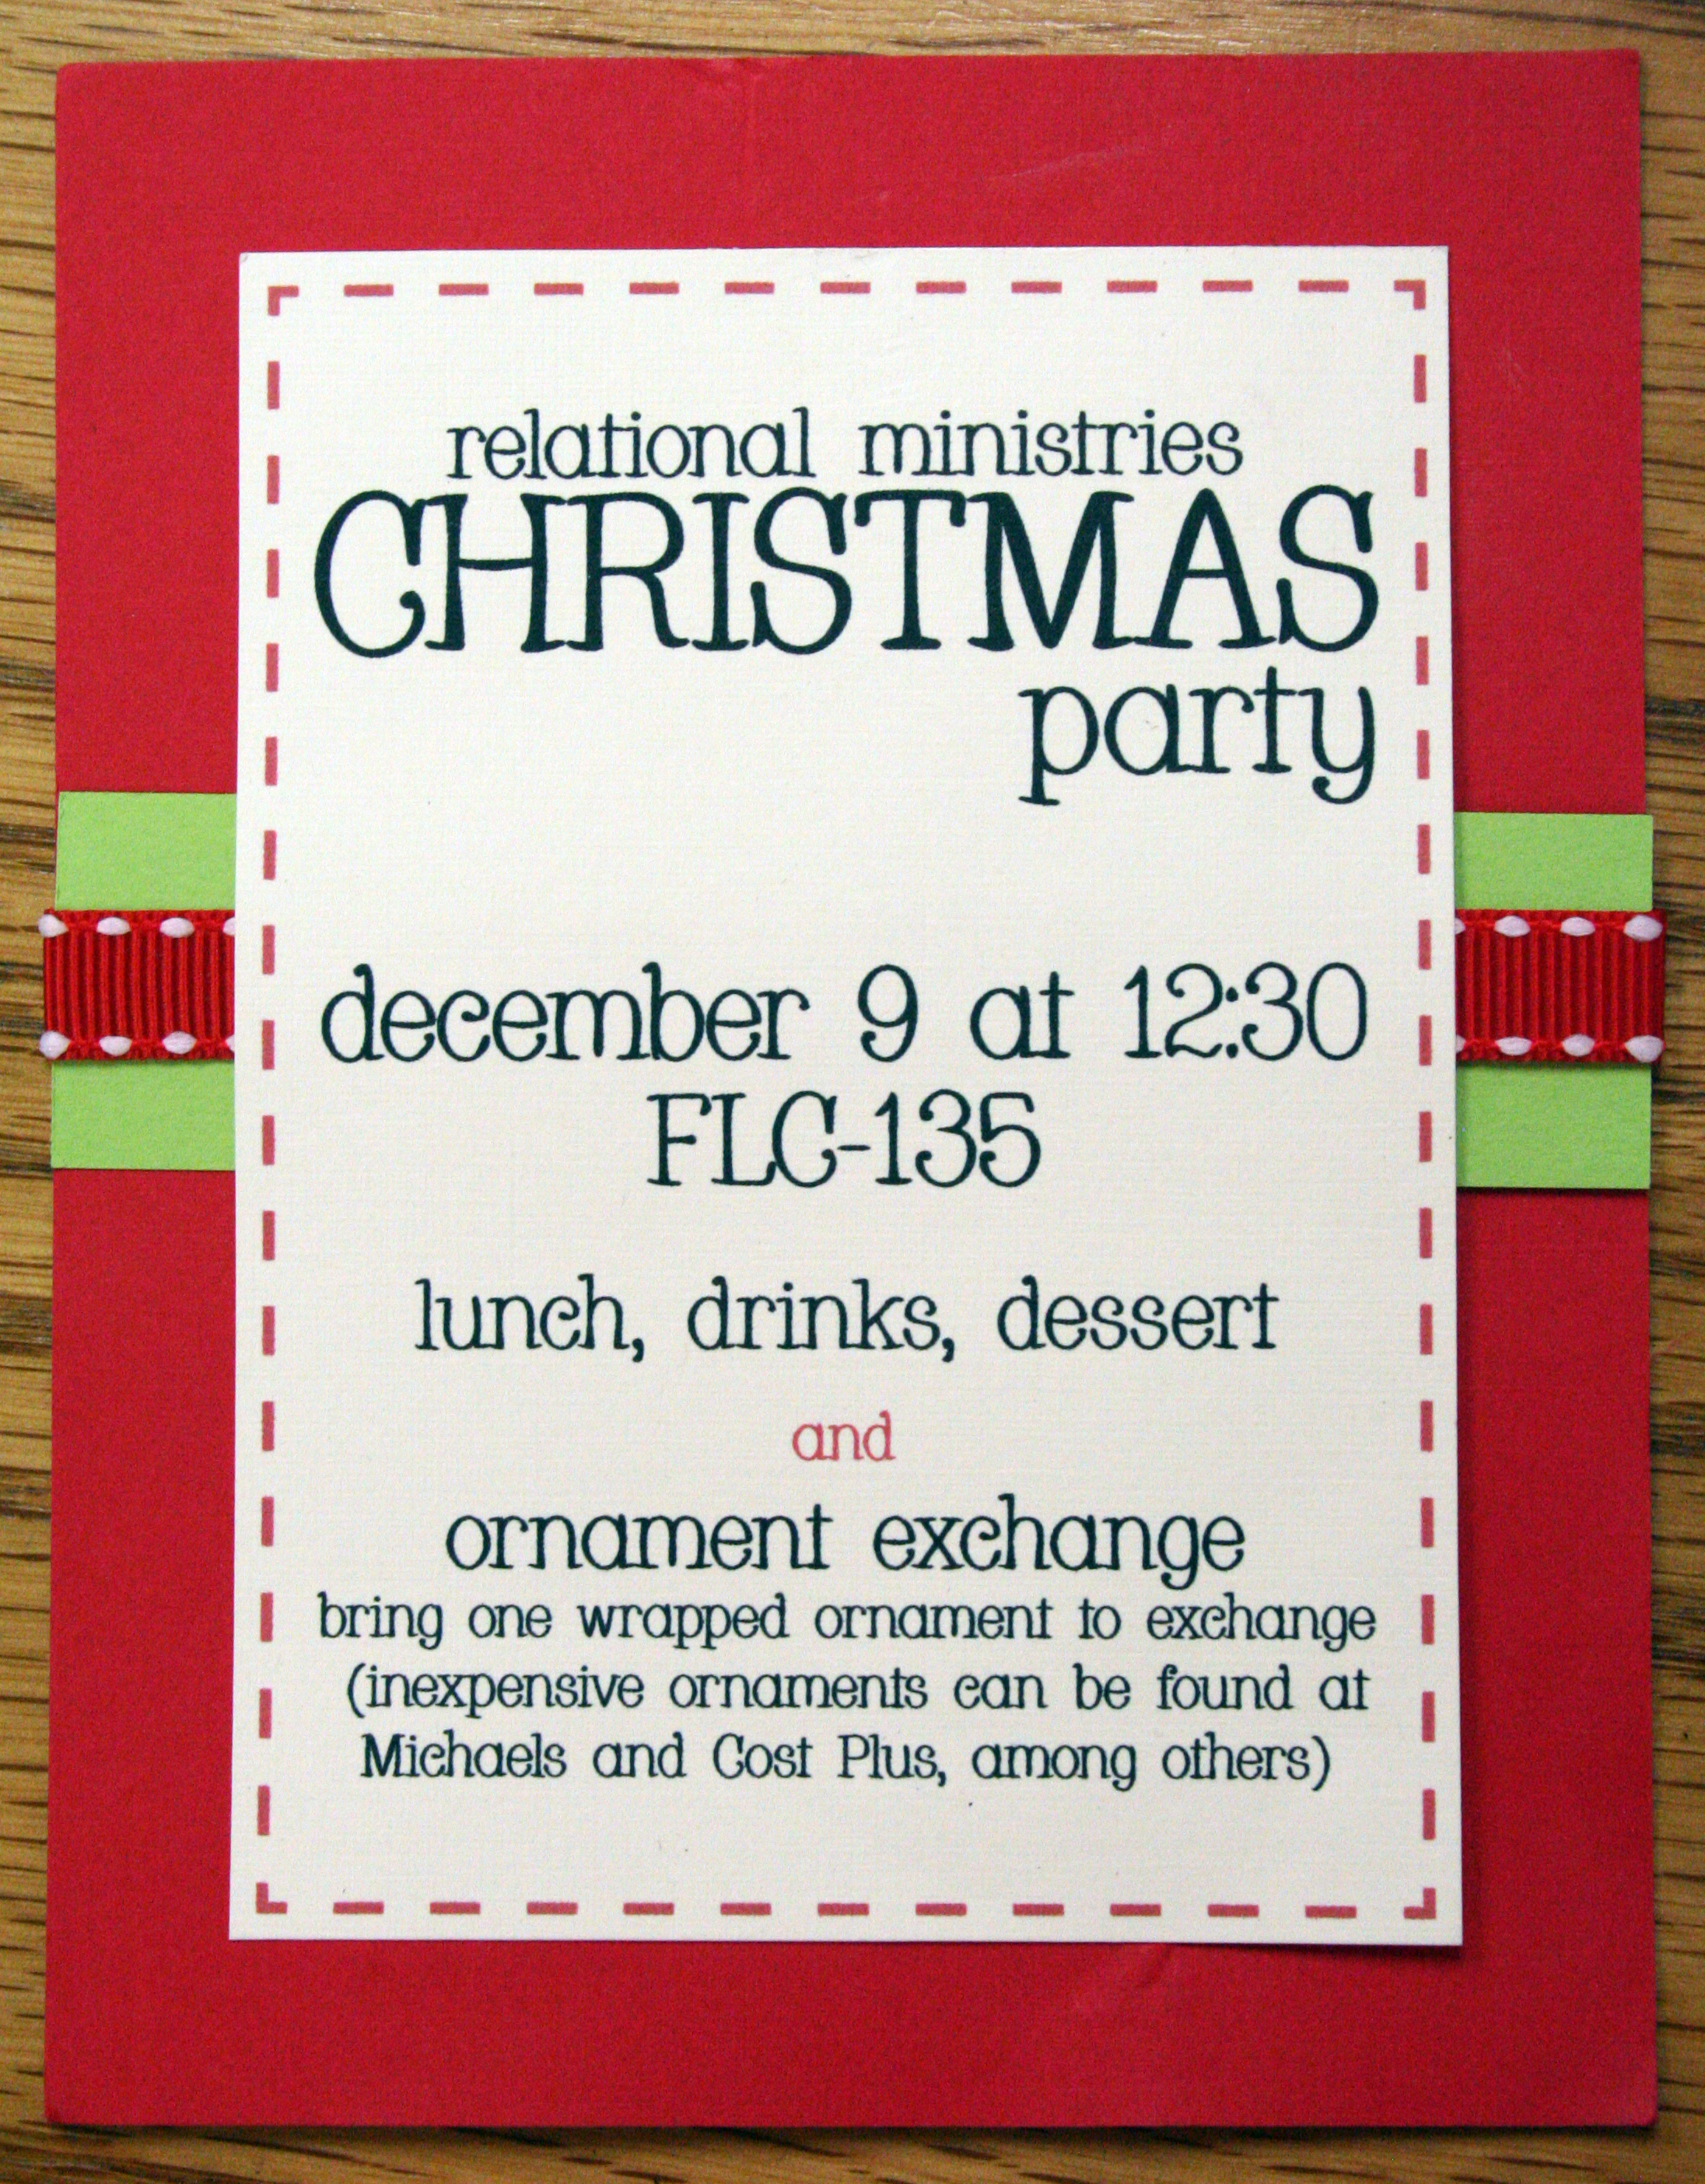 crystal cathedral relational ministries christmas party